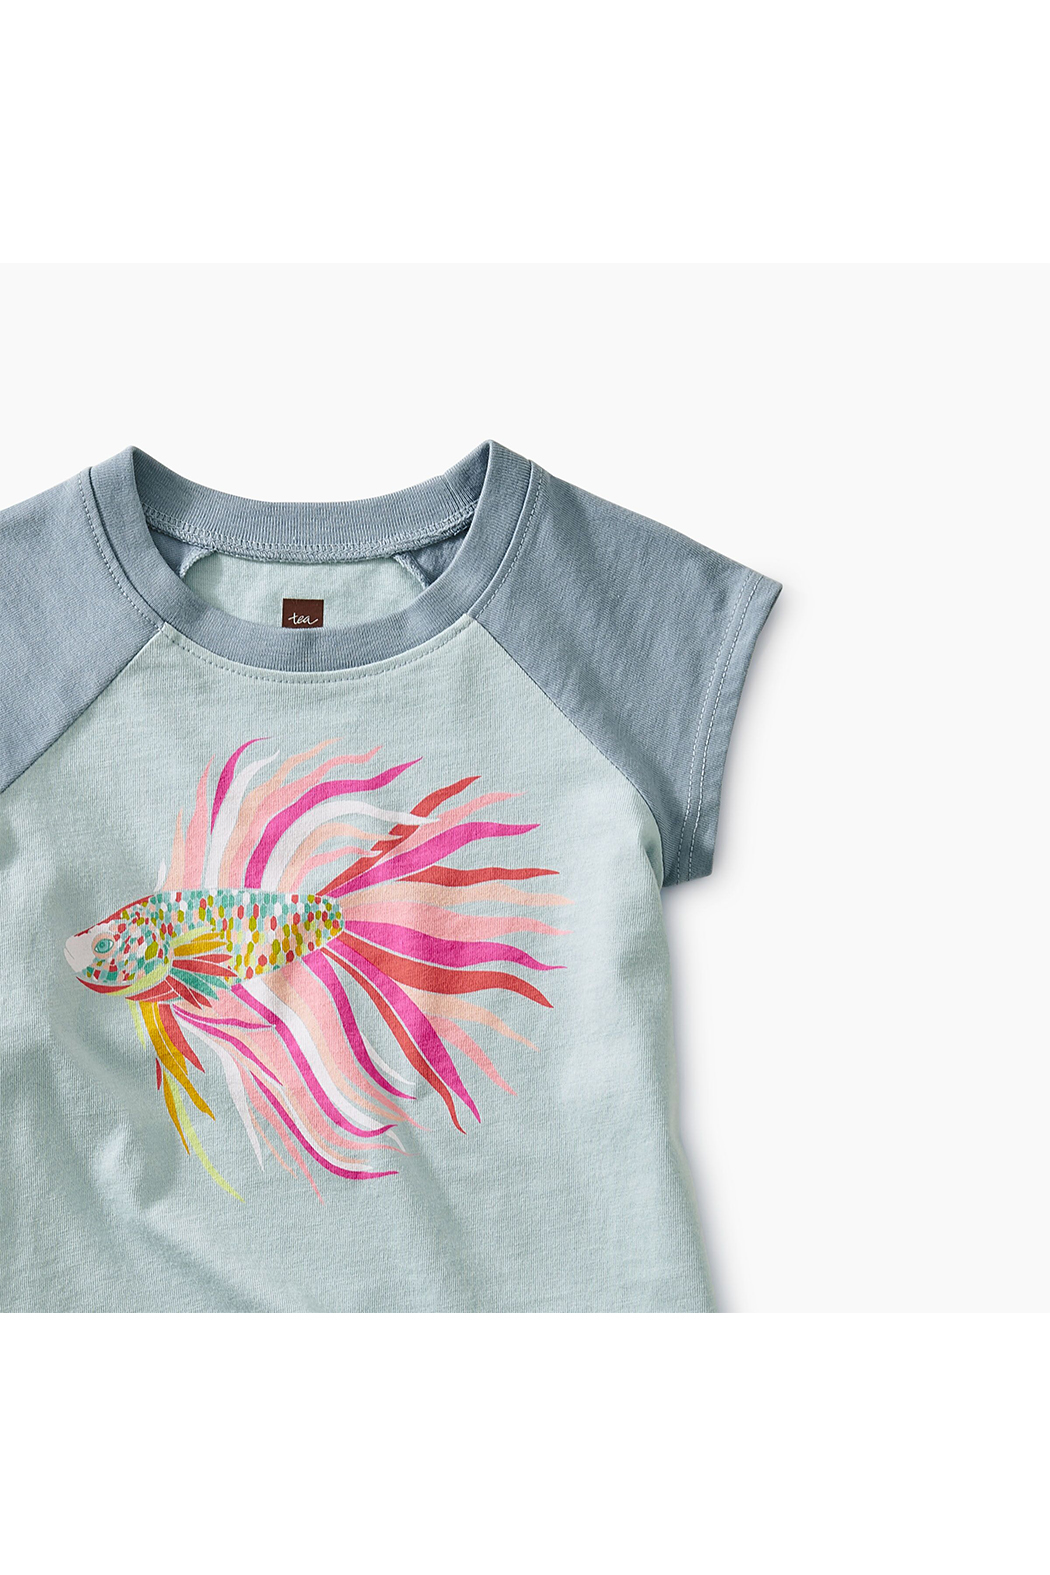 Tea Collection Thailan Beta Baby Graphic Tee - Front Full Image